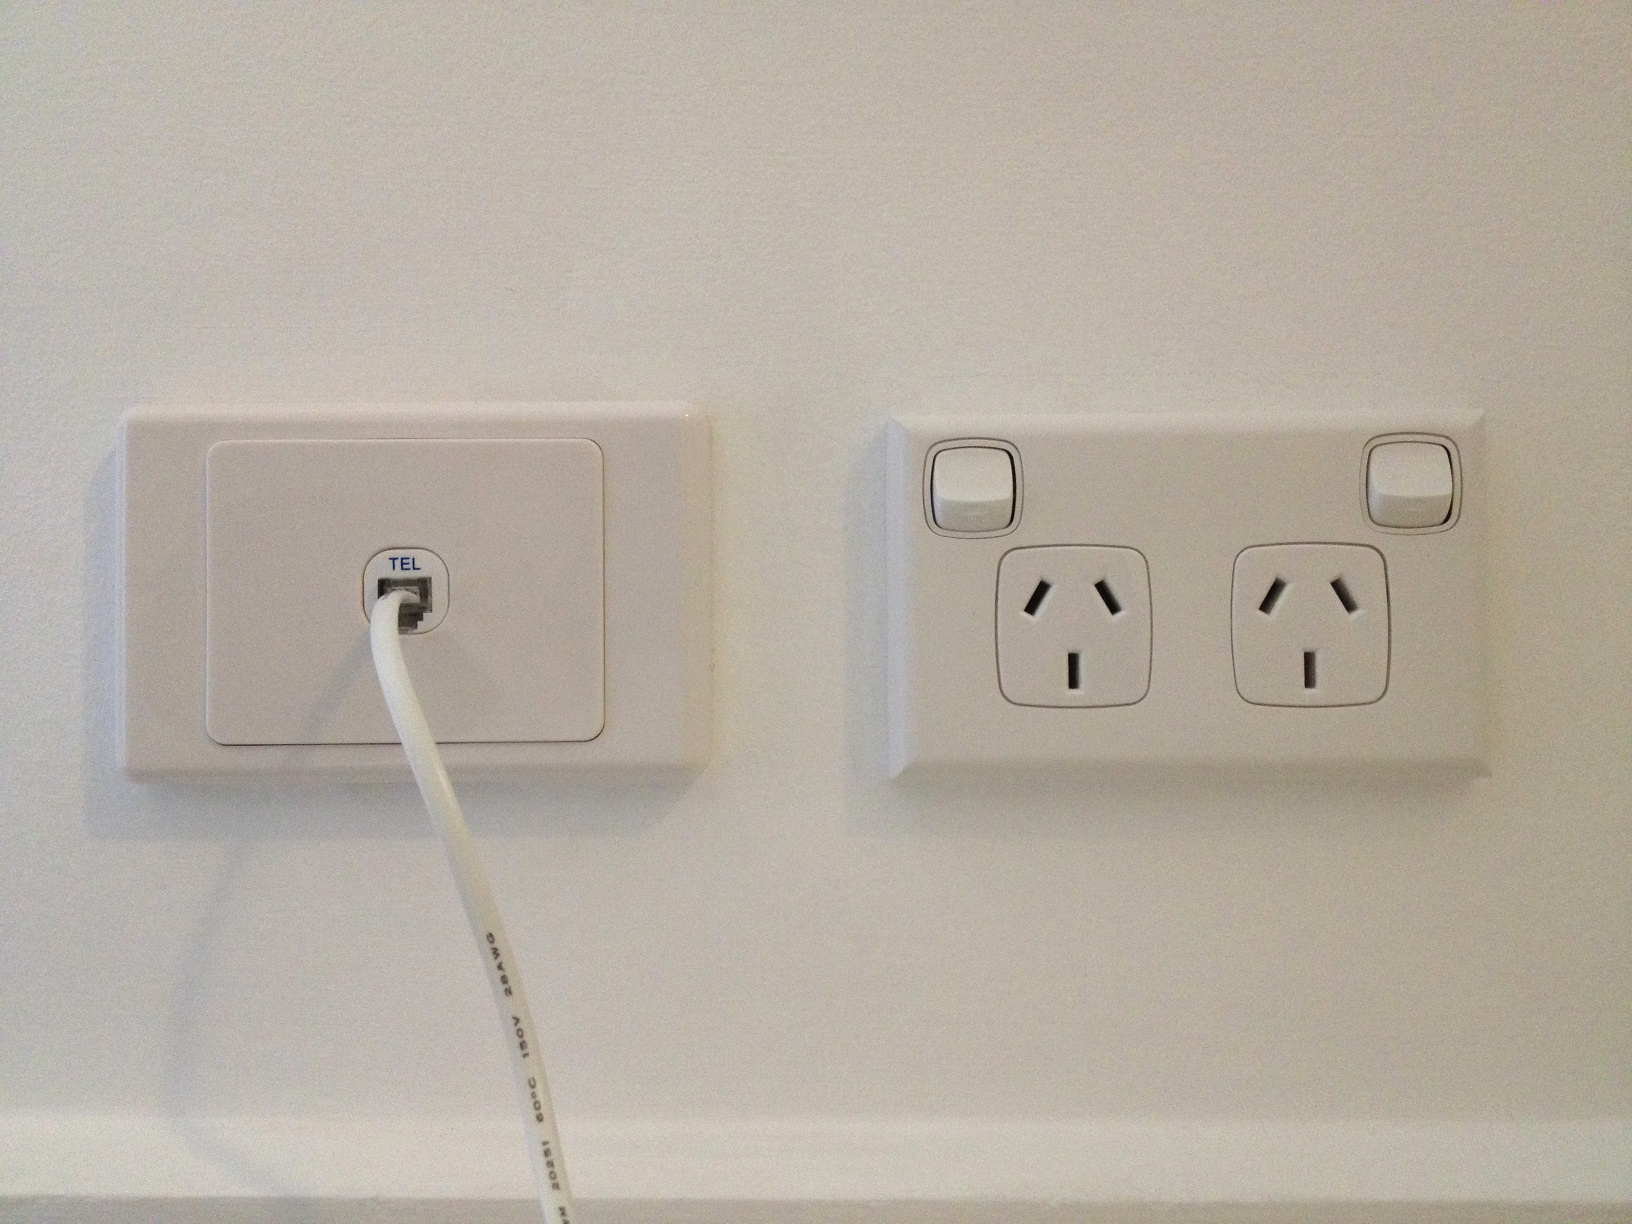 phone socket upgraded1?w=640&h=480 upgrading a 600 series phone socket to rj11 tp69 telstra wall plate wiring diagram at bakdesigns.co